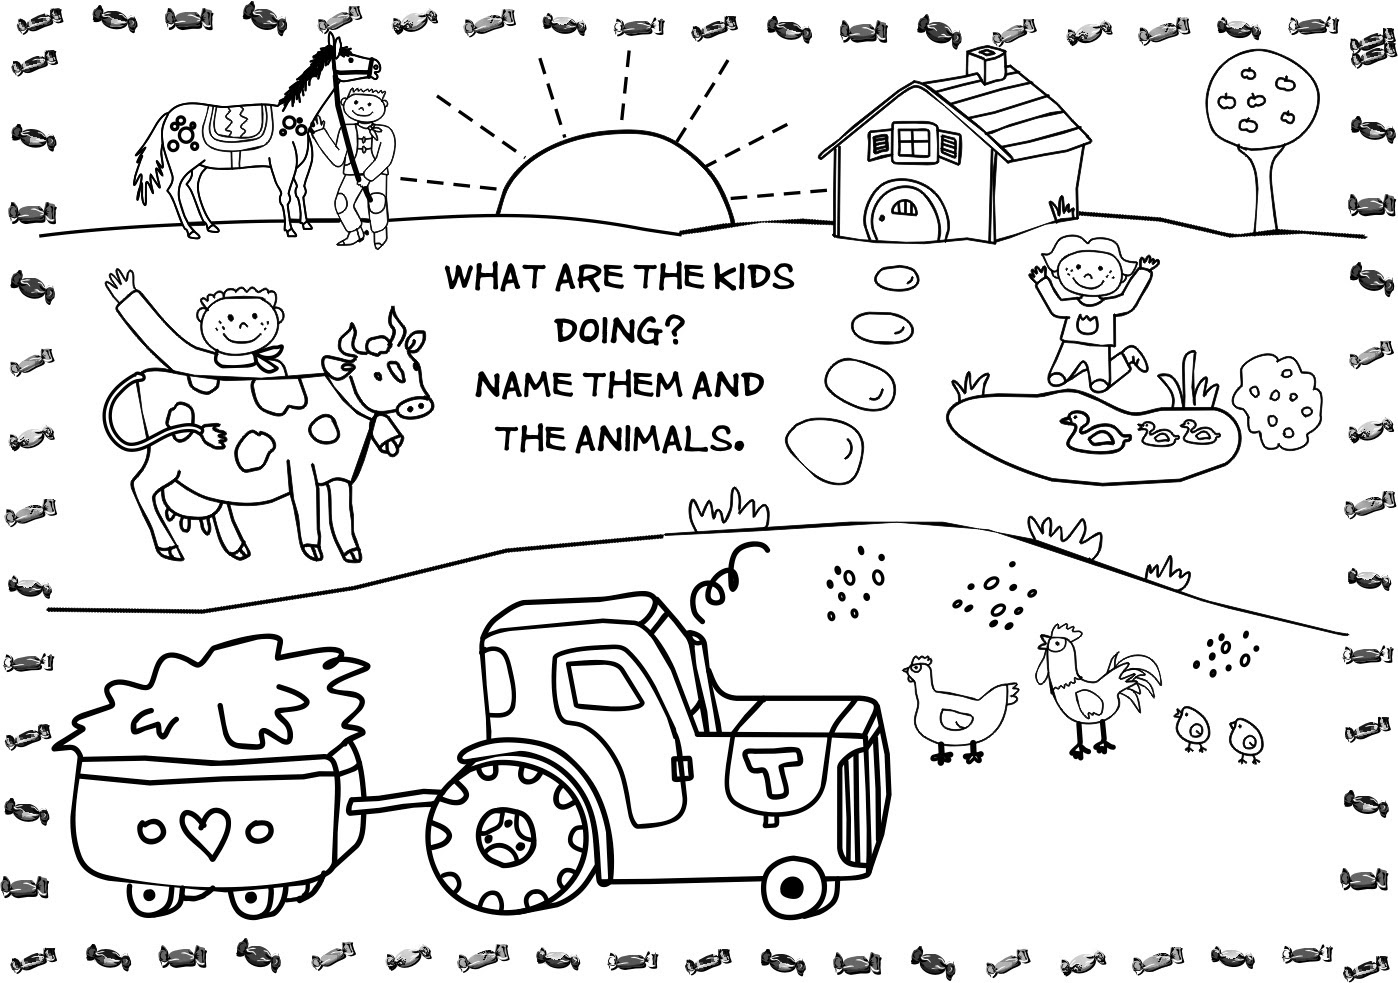 Free old macdonald farm coloring pages